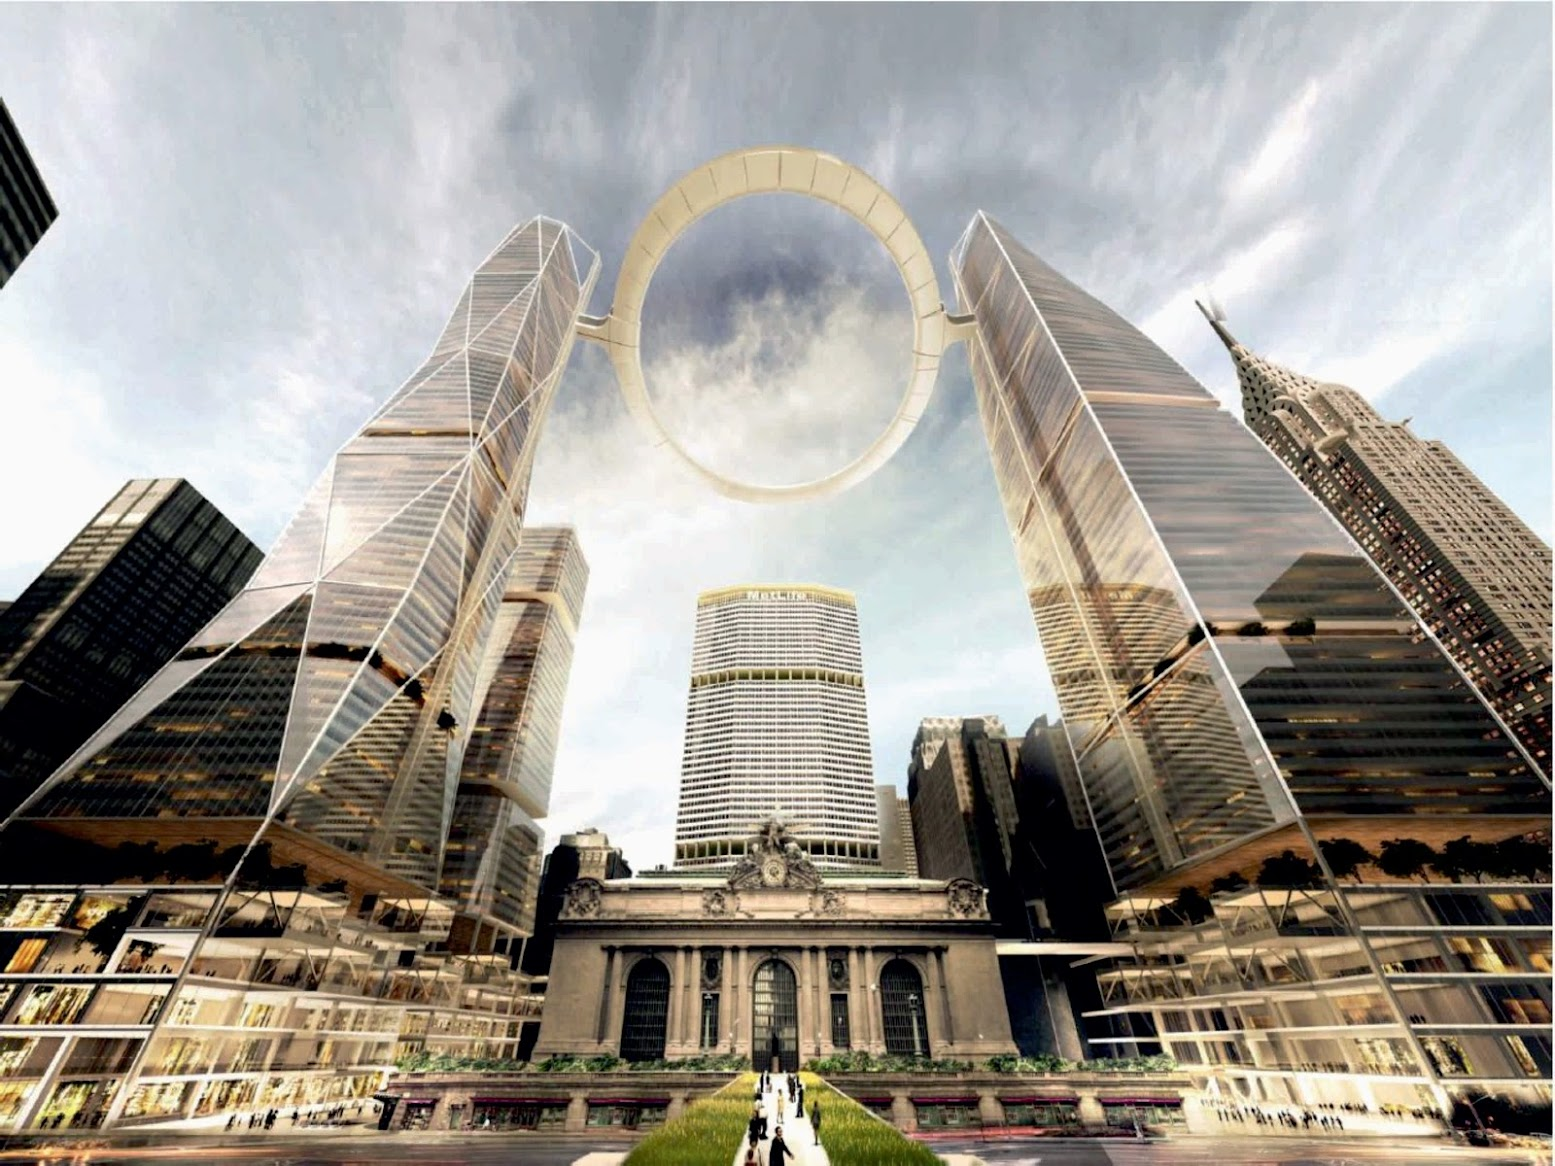 4 Washington Square N, New York, 10003, Stati Uniti d'America: [HALO ABOVE GRAND CENTRAL STATION BY SOM]